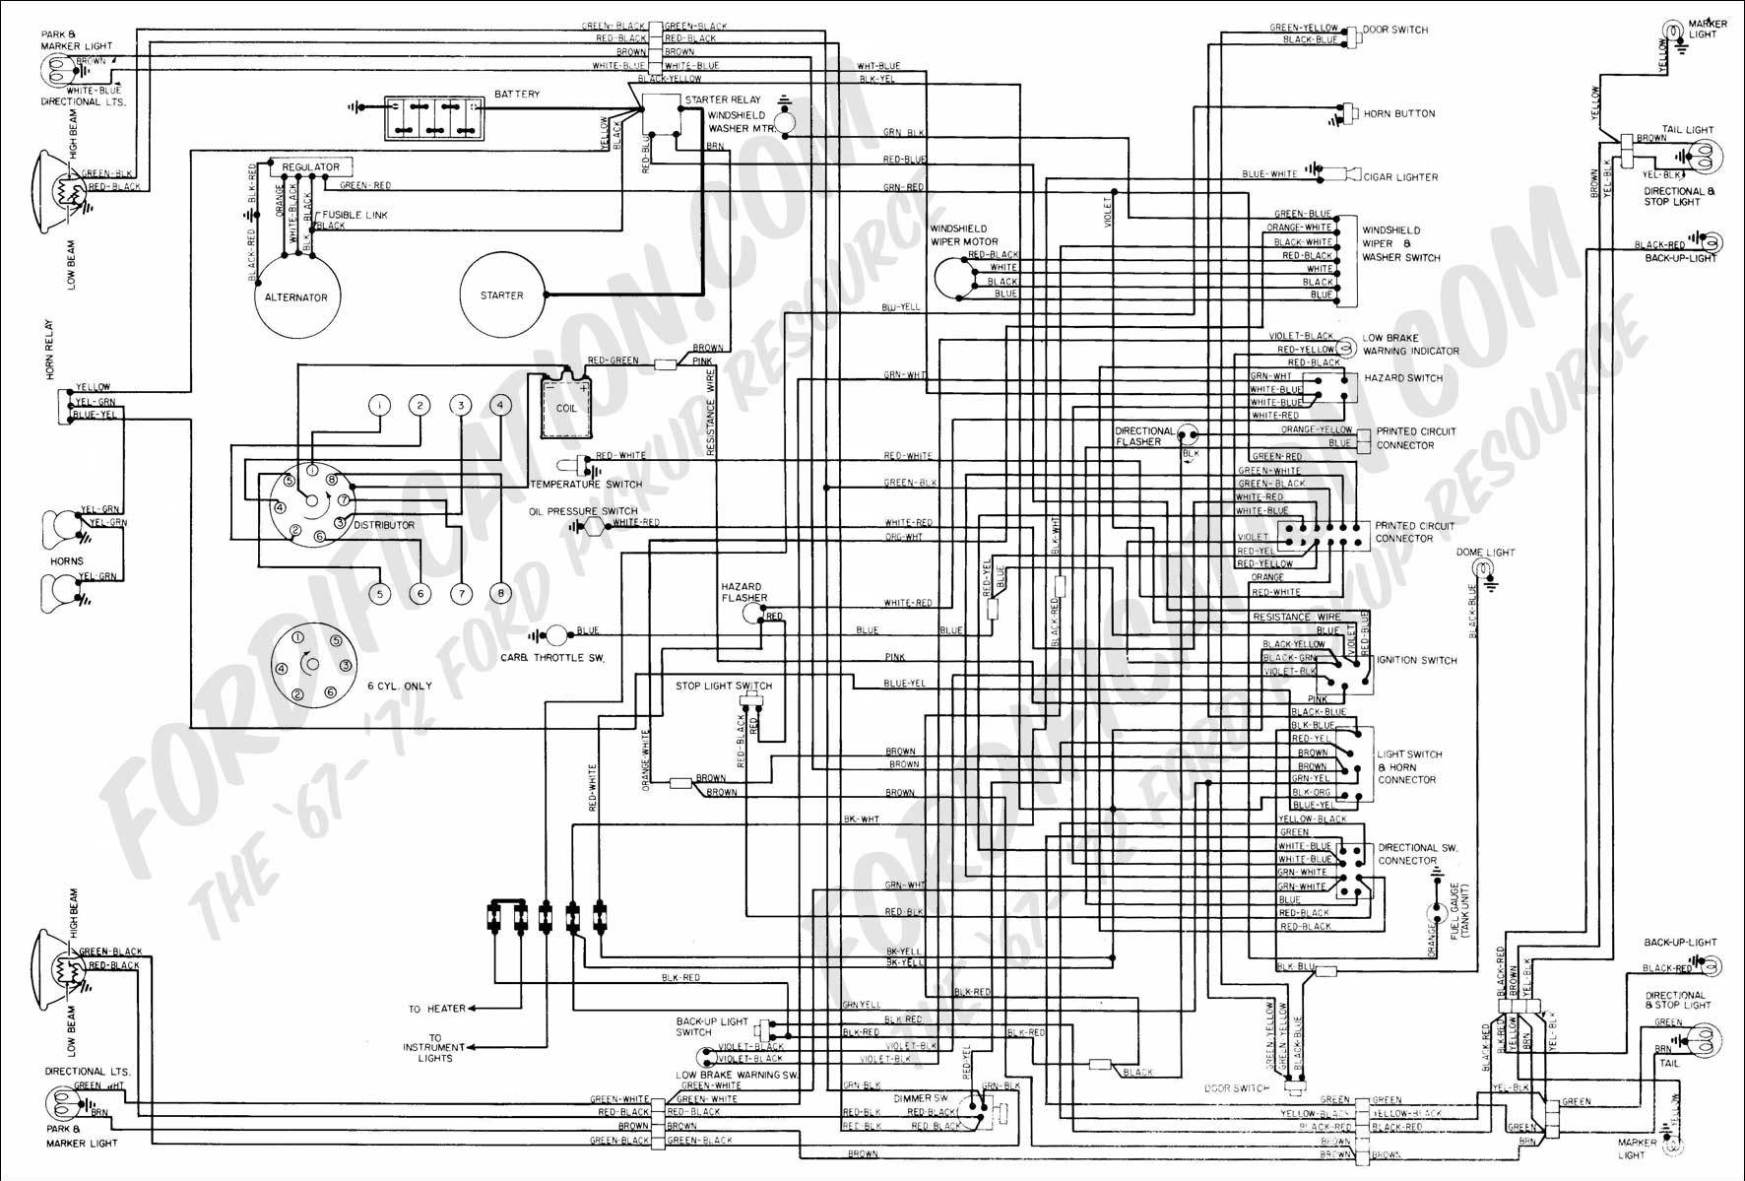 1997 chevy pickup radio wiring diagram 1997 image 1997 chevy silverado radio wiring diagram wiring diagrams on 1997 chevy pickup radio wiring diagram